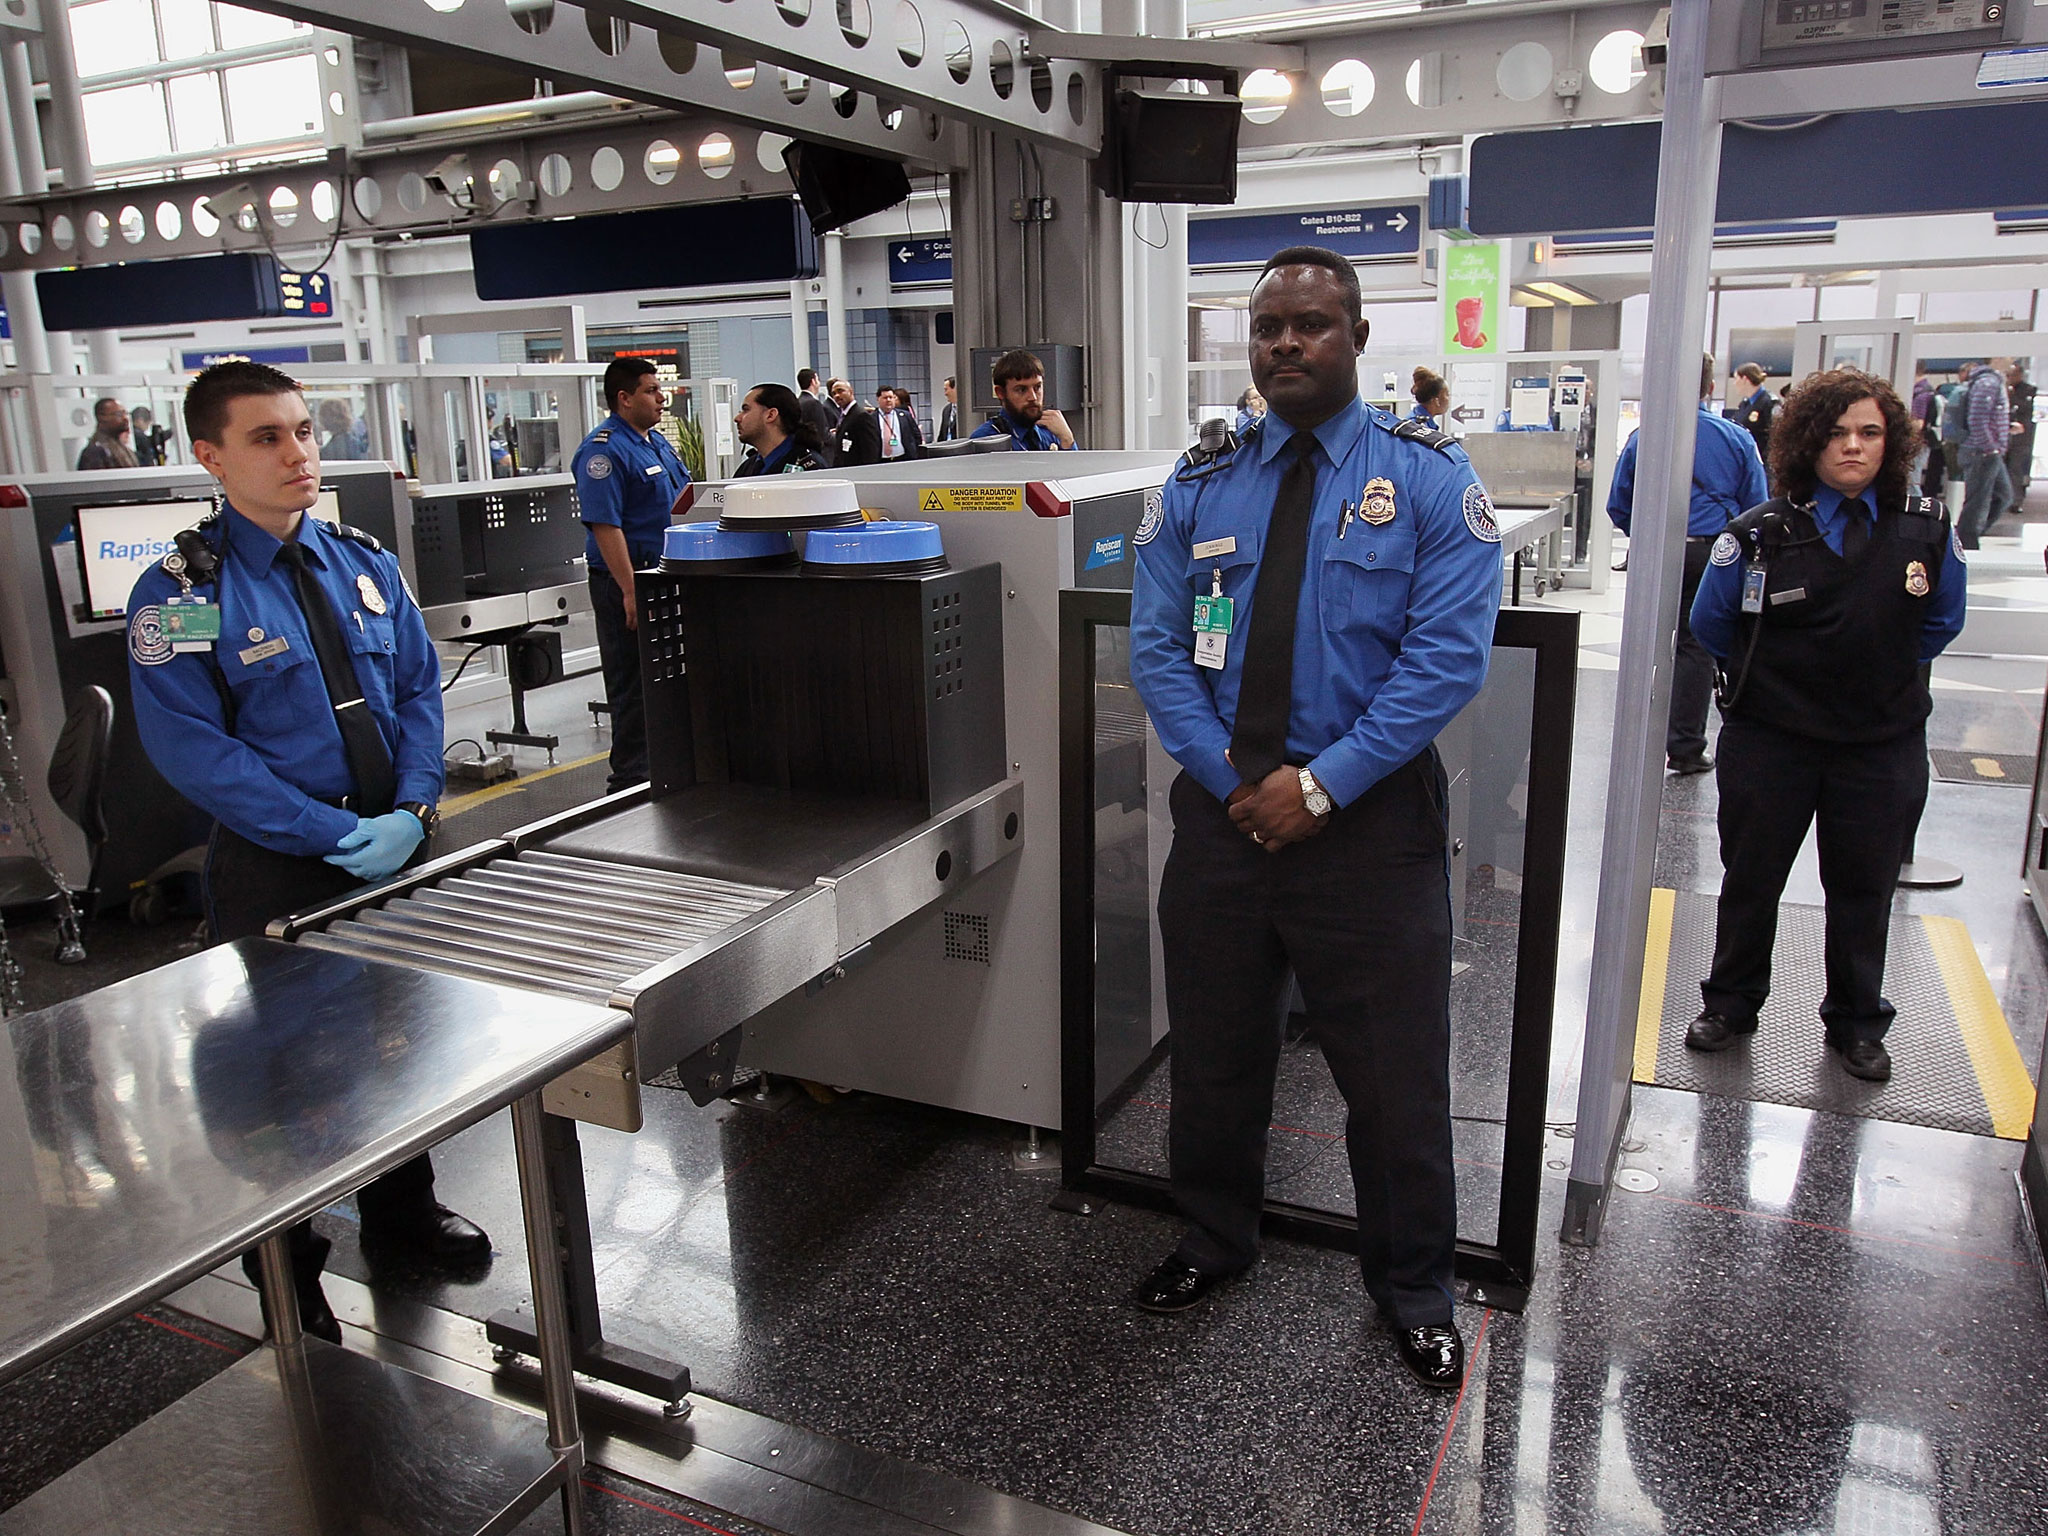 v3-us-airport-security.jpg